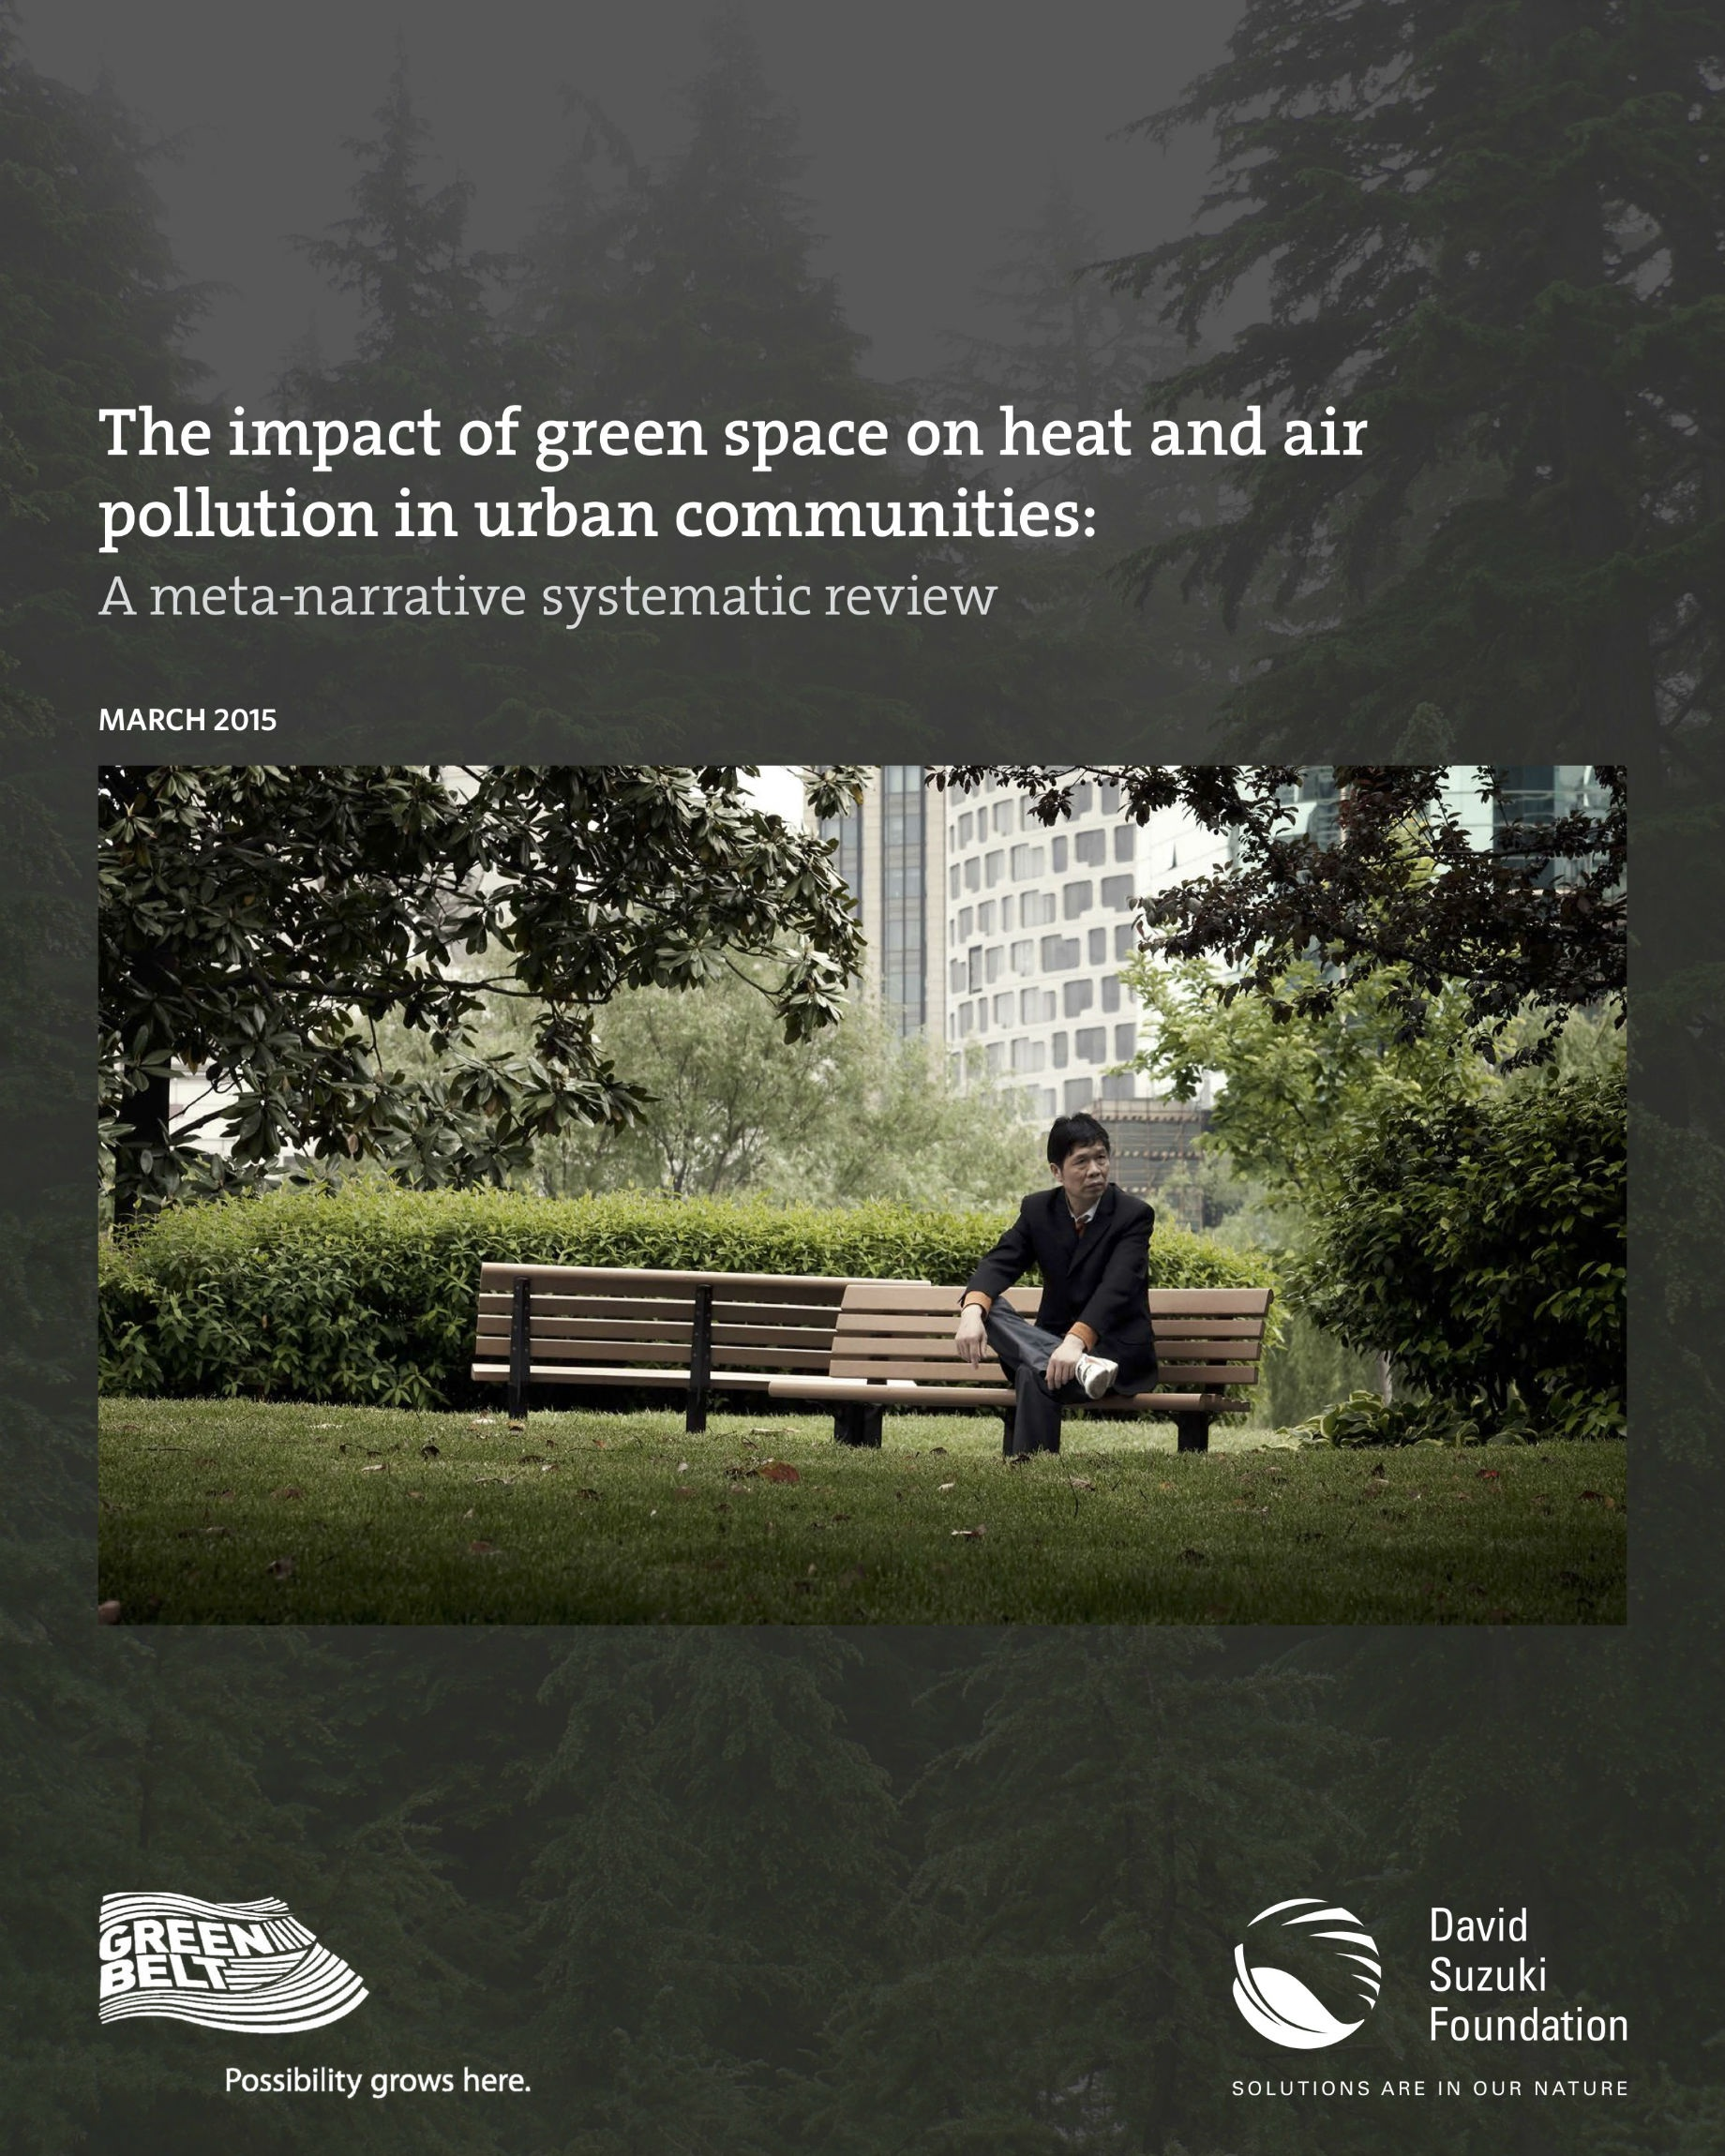 The Impact of Green Space on Heat and Air Pollution - Urban green spaces, such as parks and urban forests, are widely recognized for their ability to provide relief from heat and heat stress and improve air quality. This systematic review, published by the David Suzuki Foundation, provides a more in-depth understanding of the effect of different urban green space characteristics, including type and scale, on heat island mitigation and air pollution reduction at both local and city-wide scales. The report synthesizes research evidence from 102 peer-reviewed studies published over the past five years on how green spaces can help to reduce heat, improve air quality and support healthy livable urban communities.